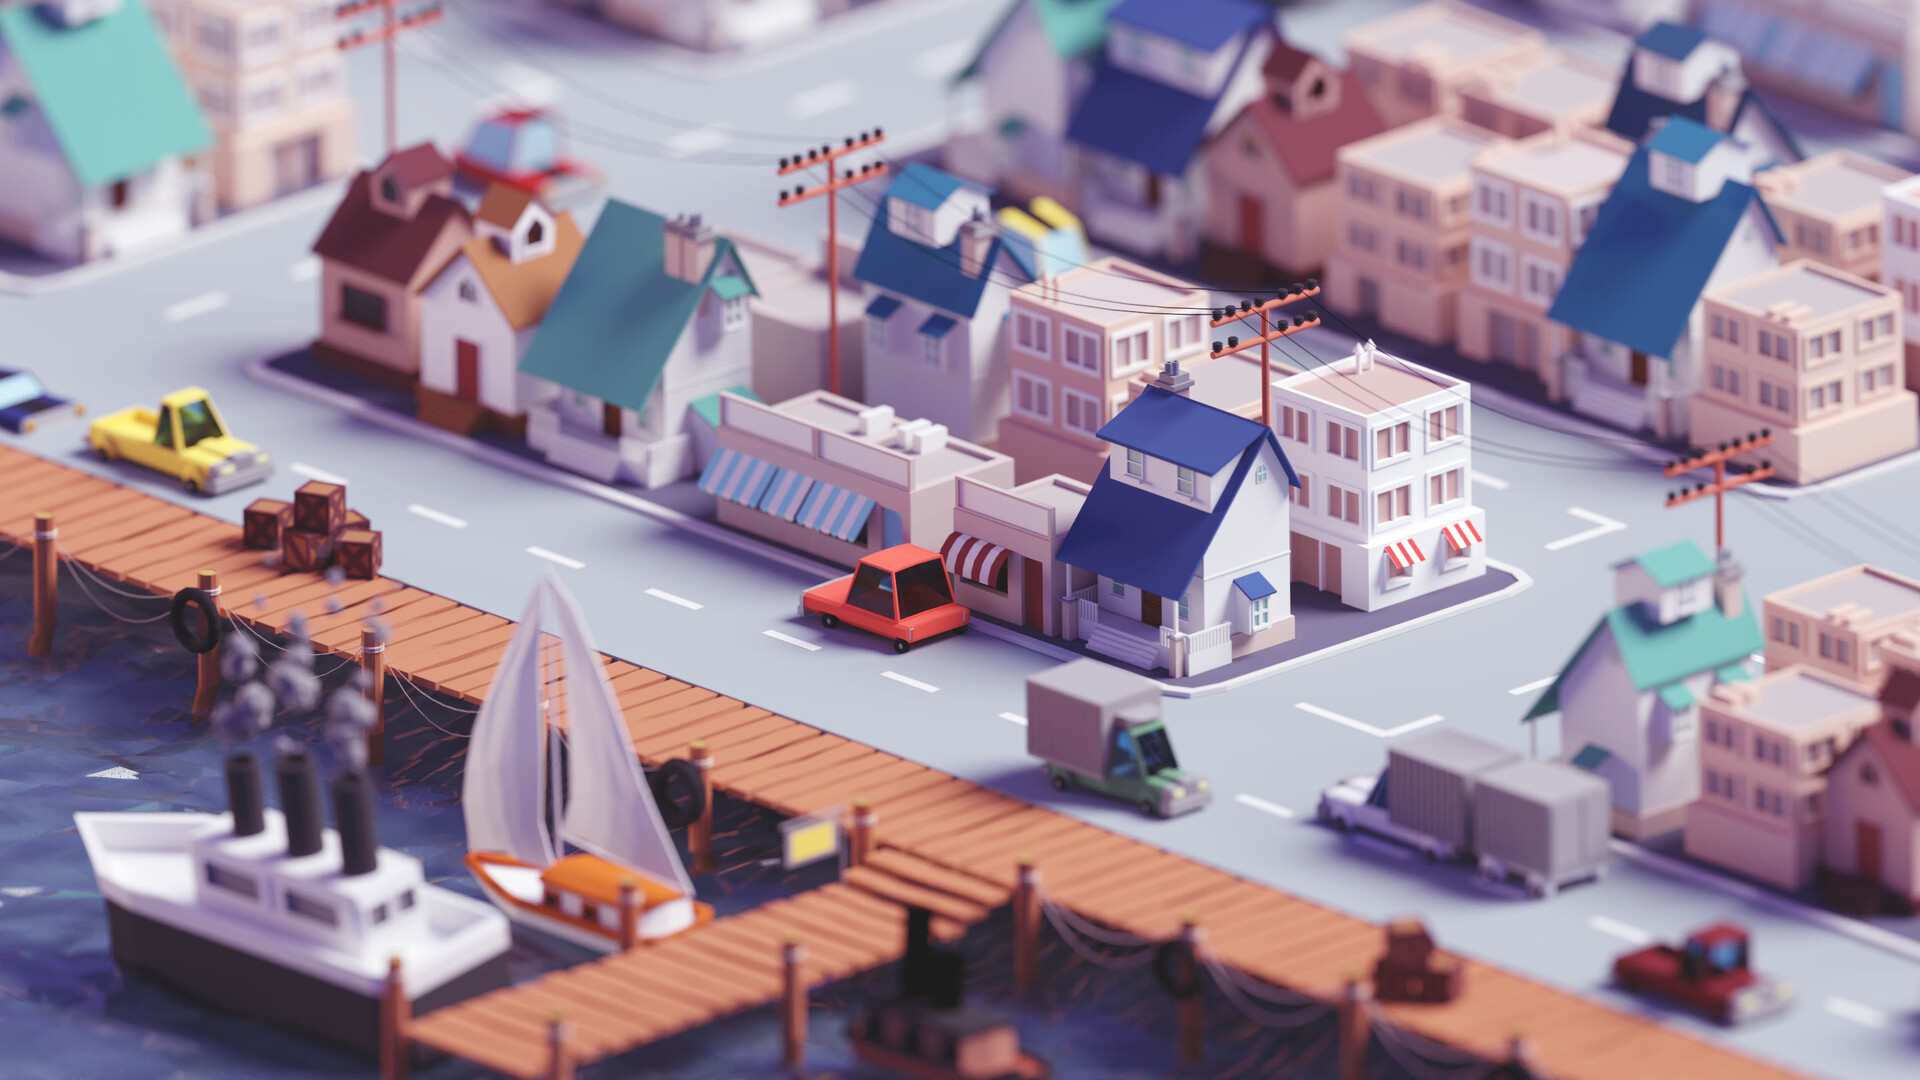 Low Poly Fishing Village Hd Wallpaper Background Image